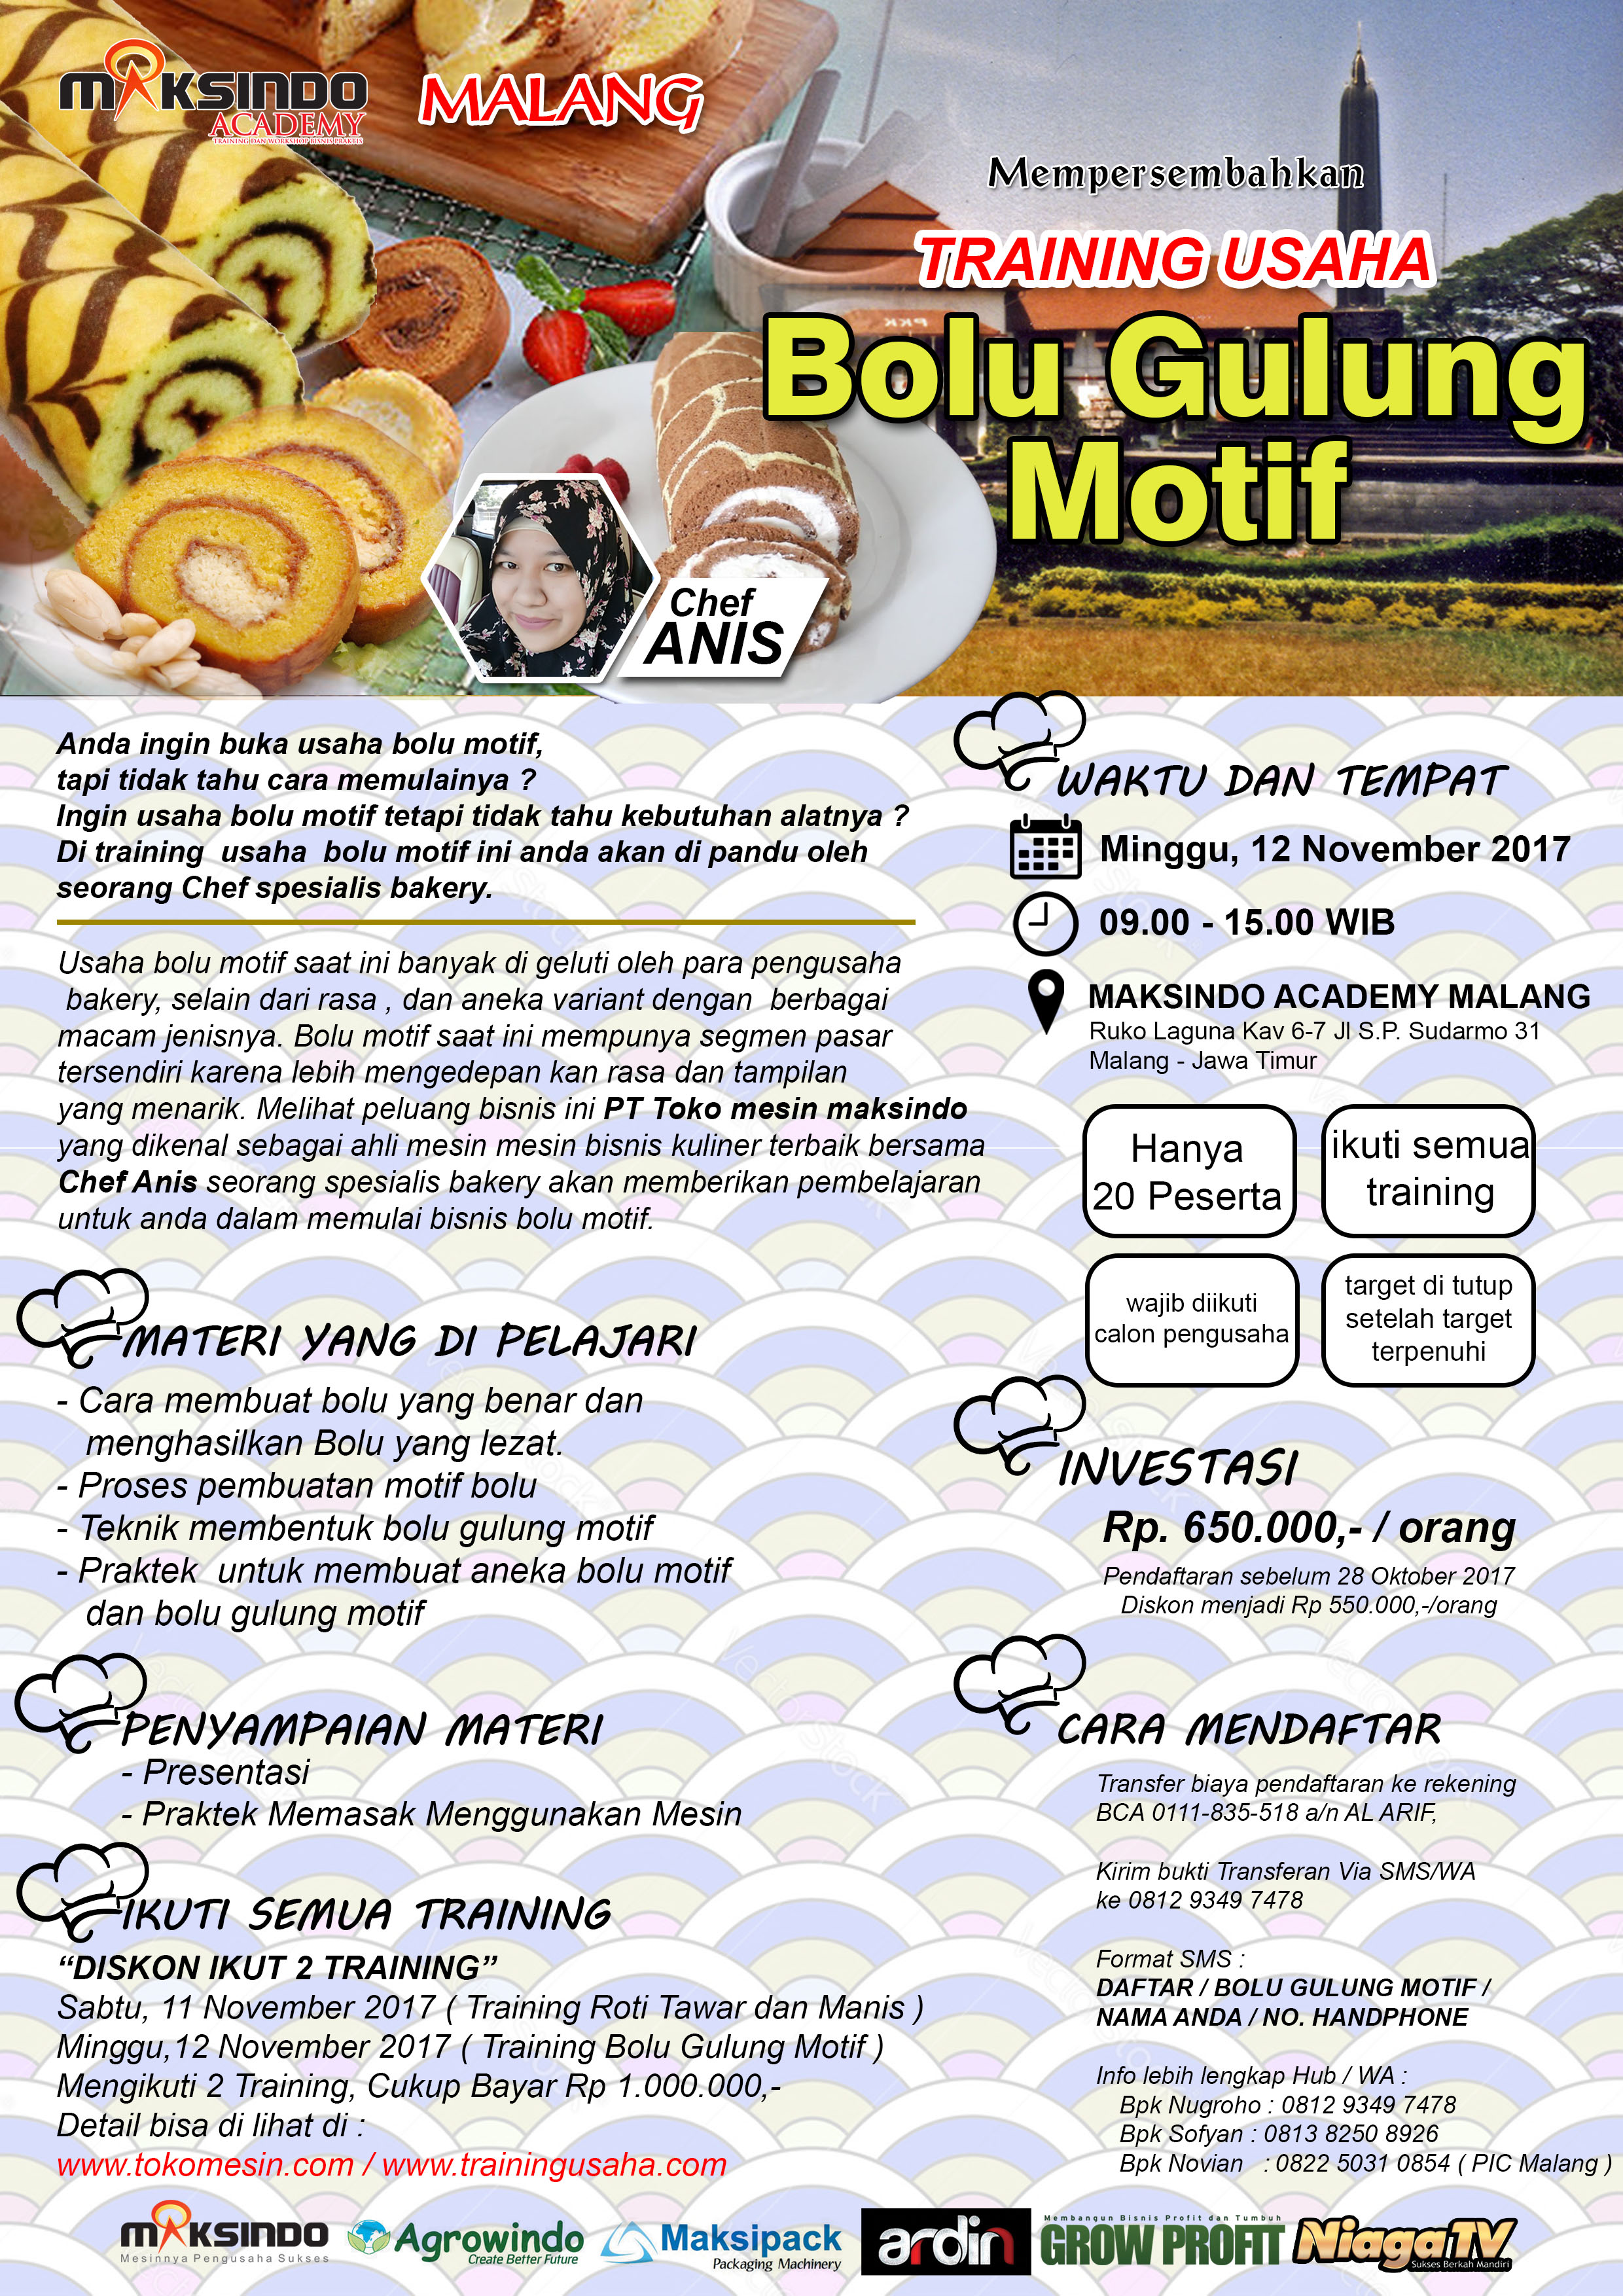 Training Usaha Bolu Gulung Motif, 12 November 2017